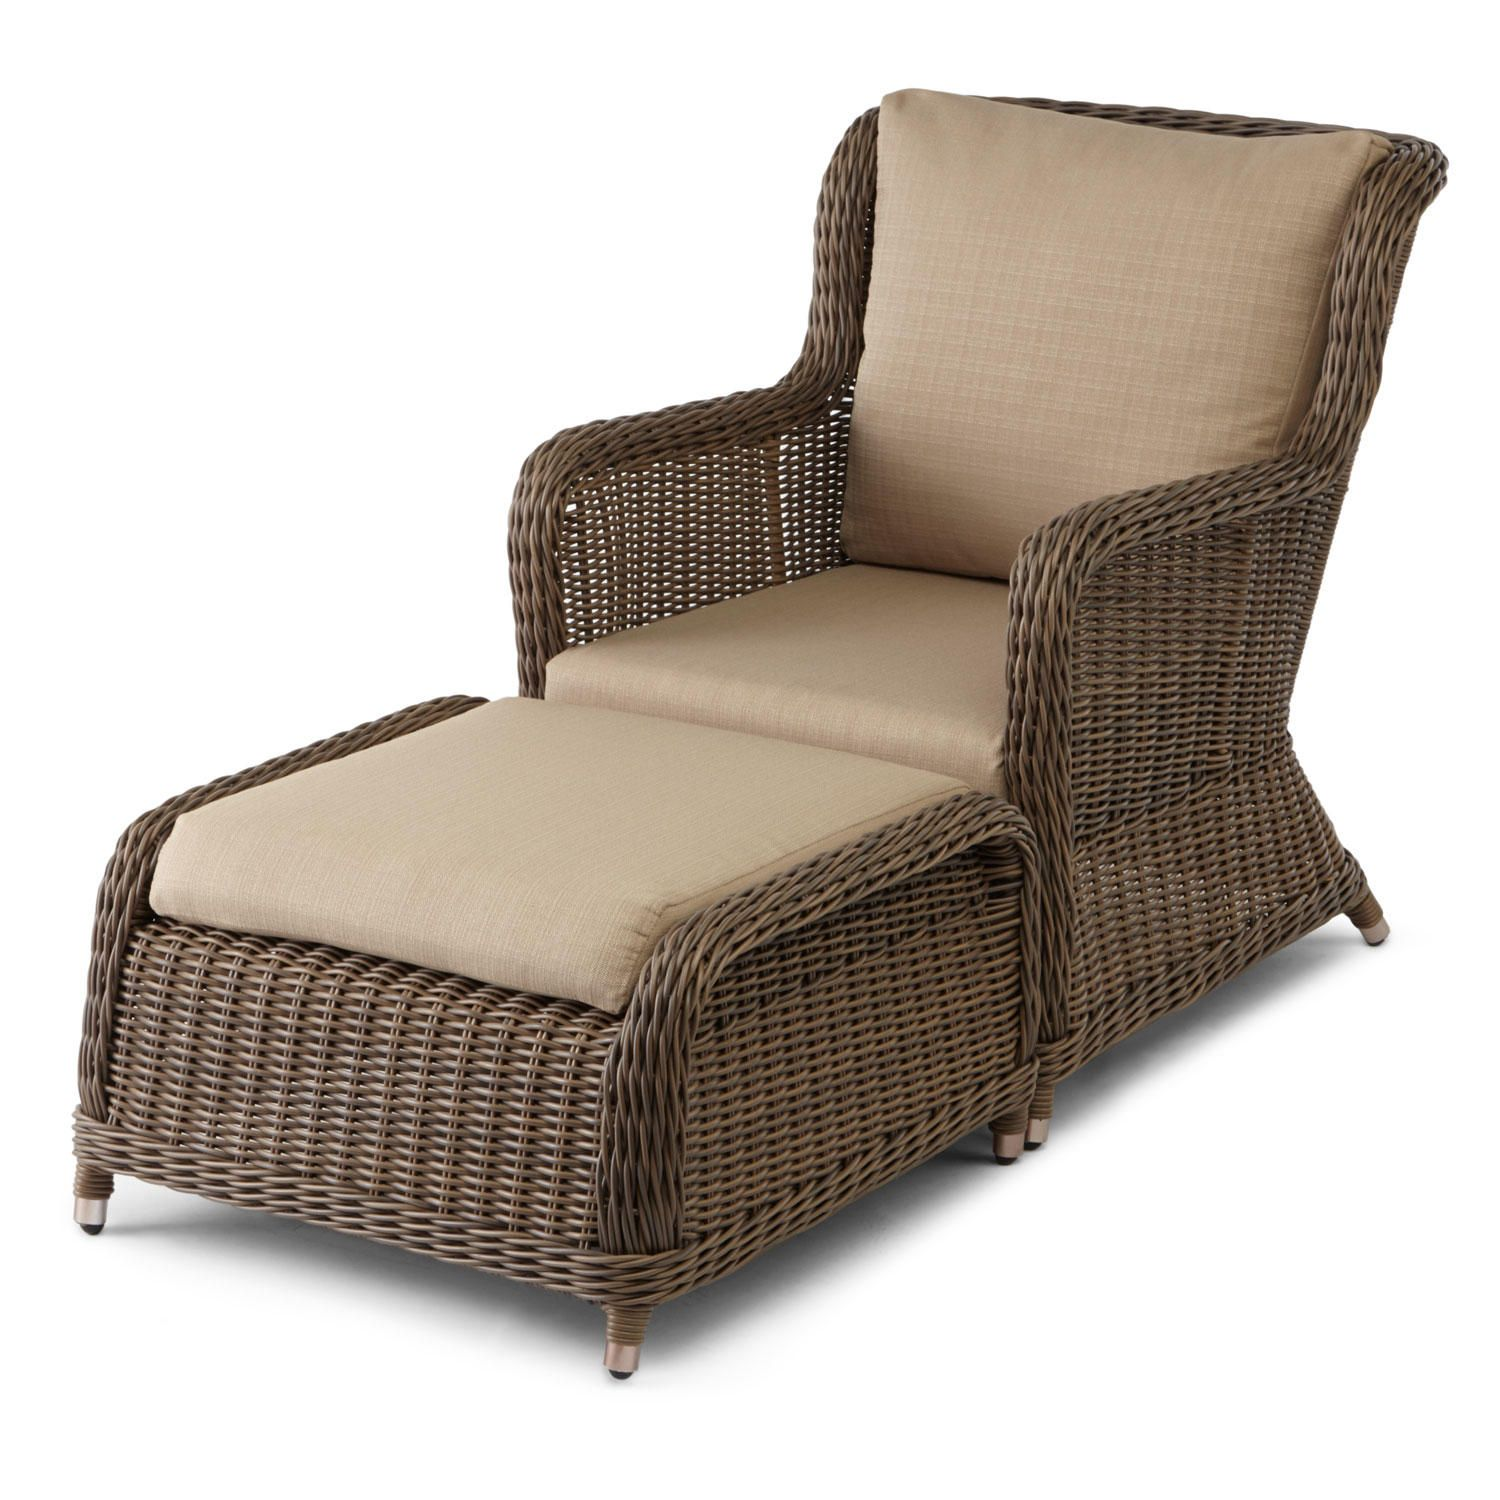 Exceptionnel Alcee Resin Wicker Outdoor Chair And Ottoman Set   Taupe